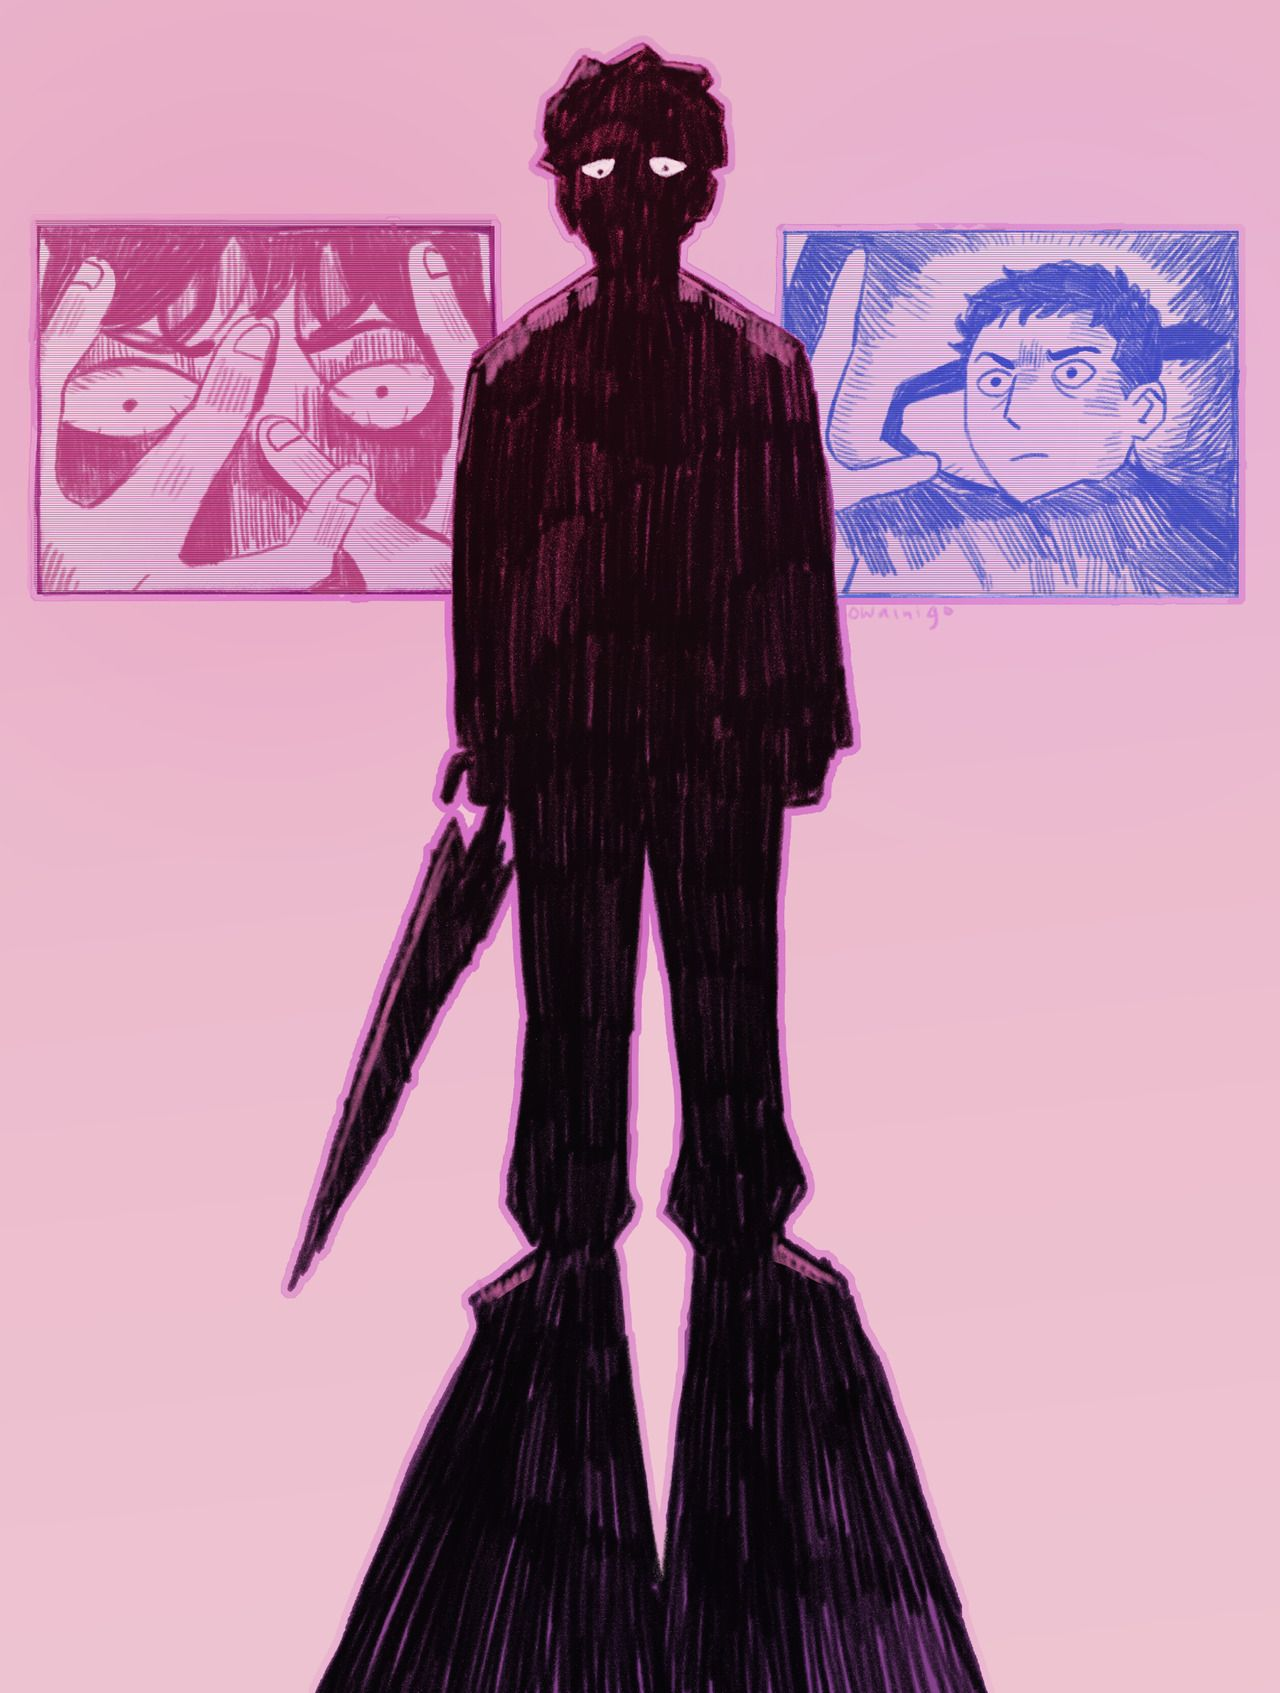 Do You Know How Much Your Words Hurt Mob Psycho 100 Mob Psycho